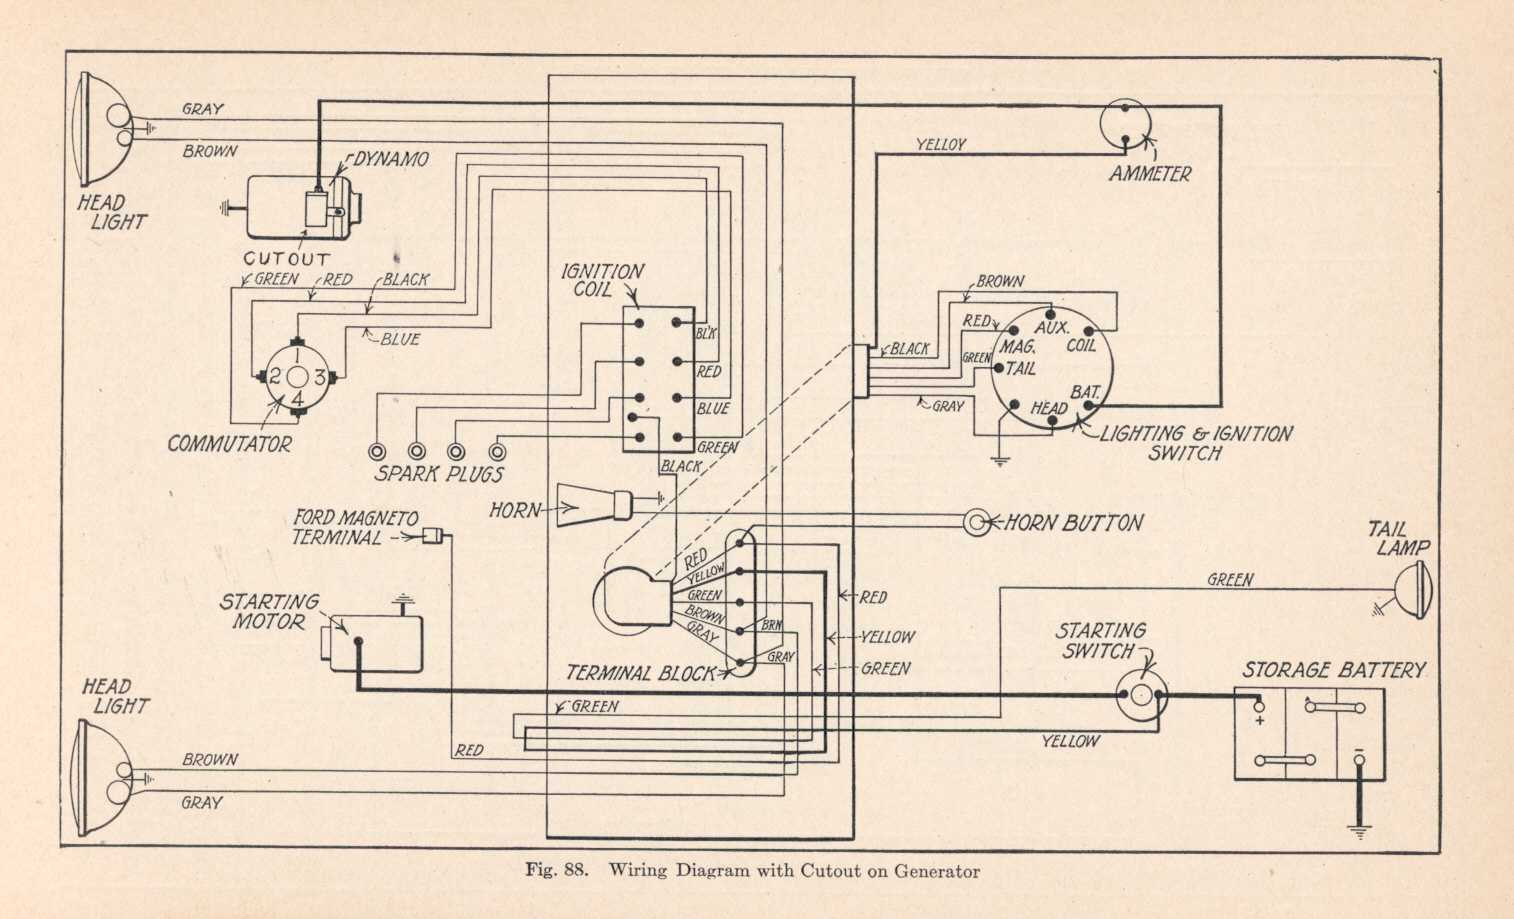 80032?resize=665%2C404 wiring diagram for signal stat 900 the wiring diagram signal stat 800 wiring diagram at crackthecode.co